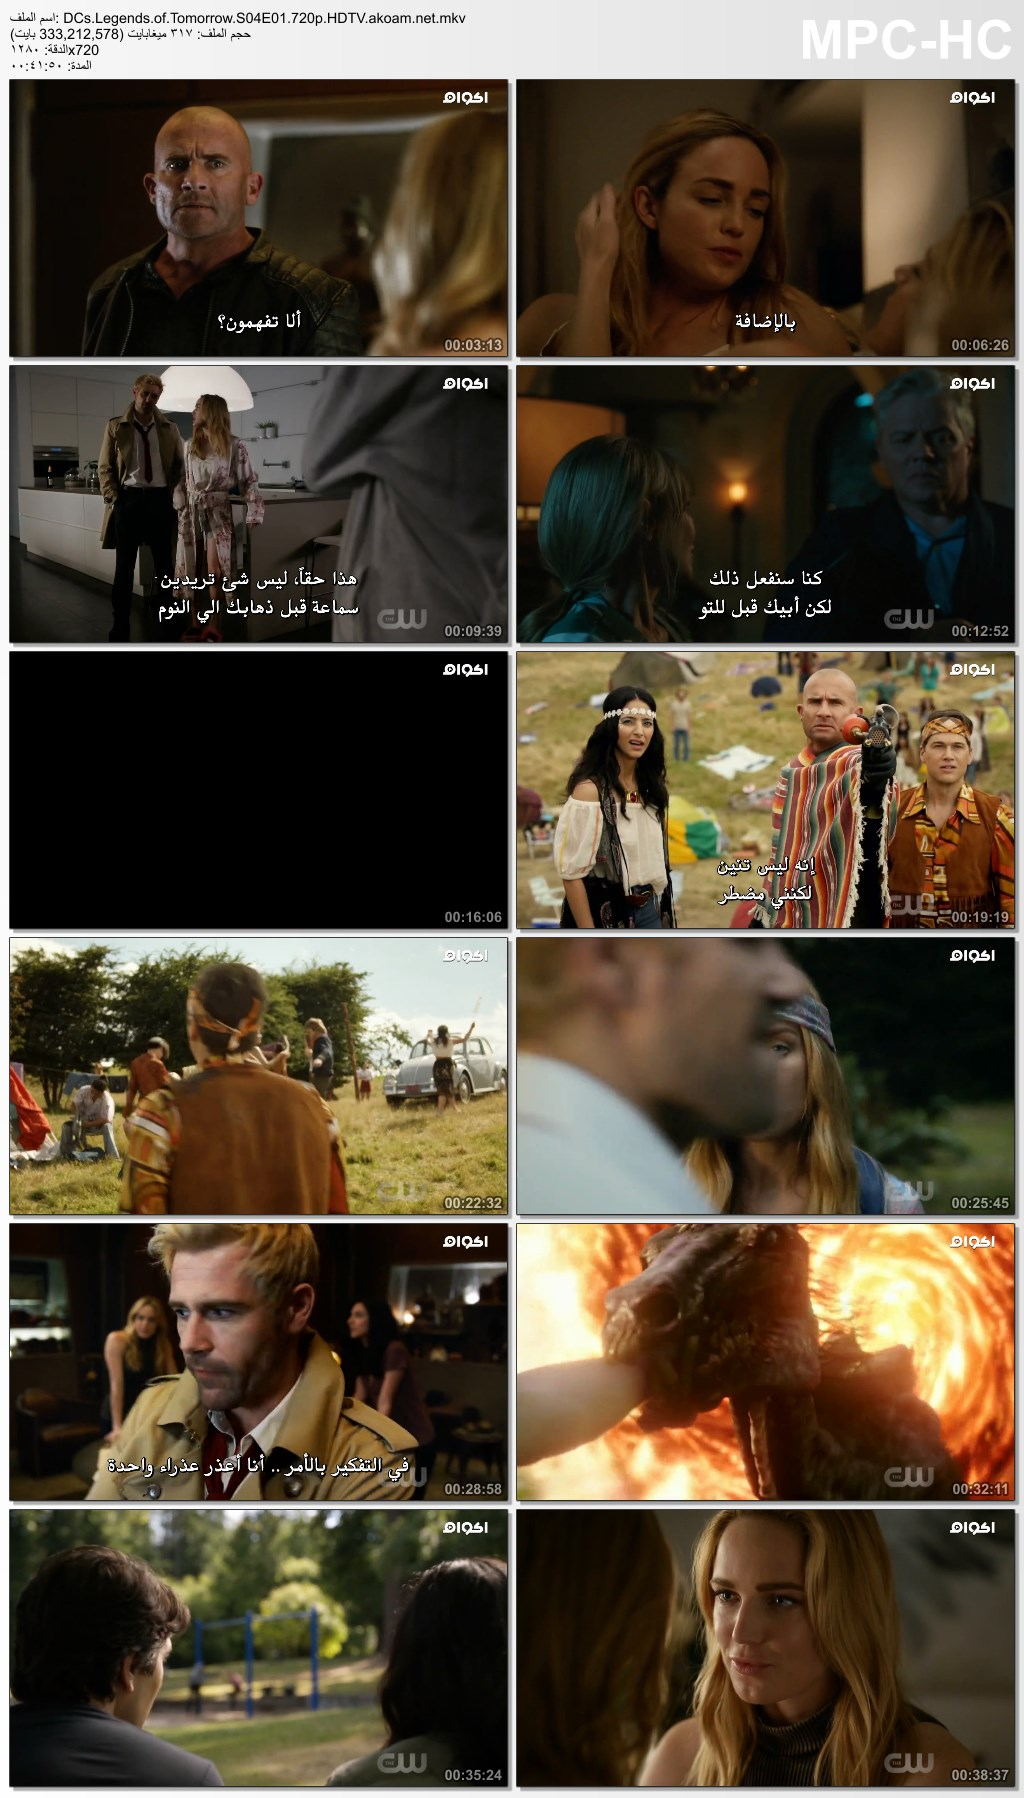 الاكشن,المغامرة,Legends of Tomorrow,Legends of Tomorrow season 4,اساطير الغد